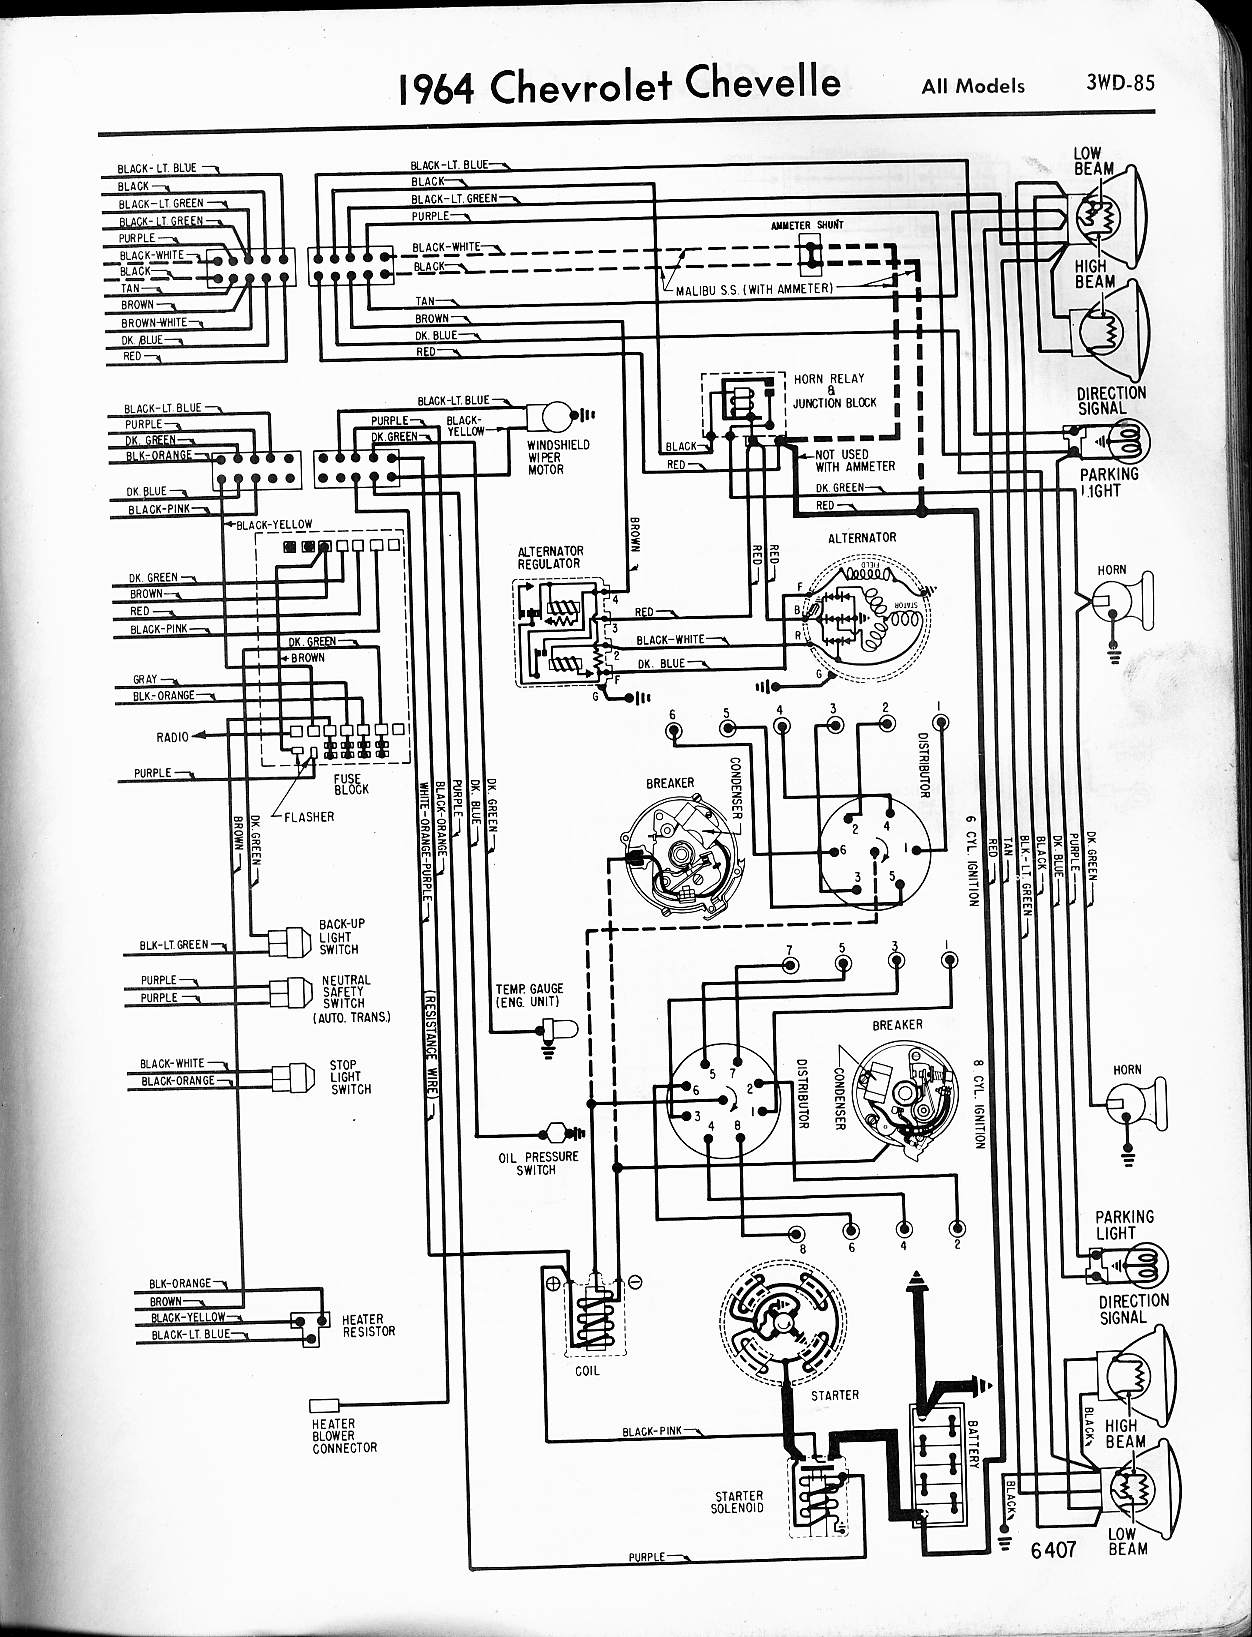 Chevy Wiring Diagrams - Chevy malibu wiring diagram